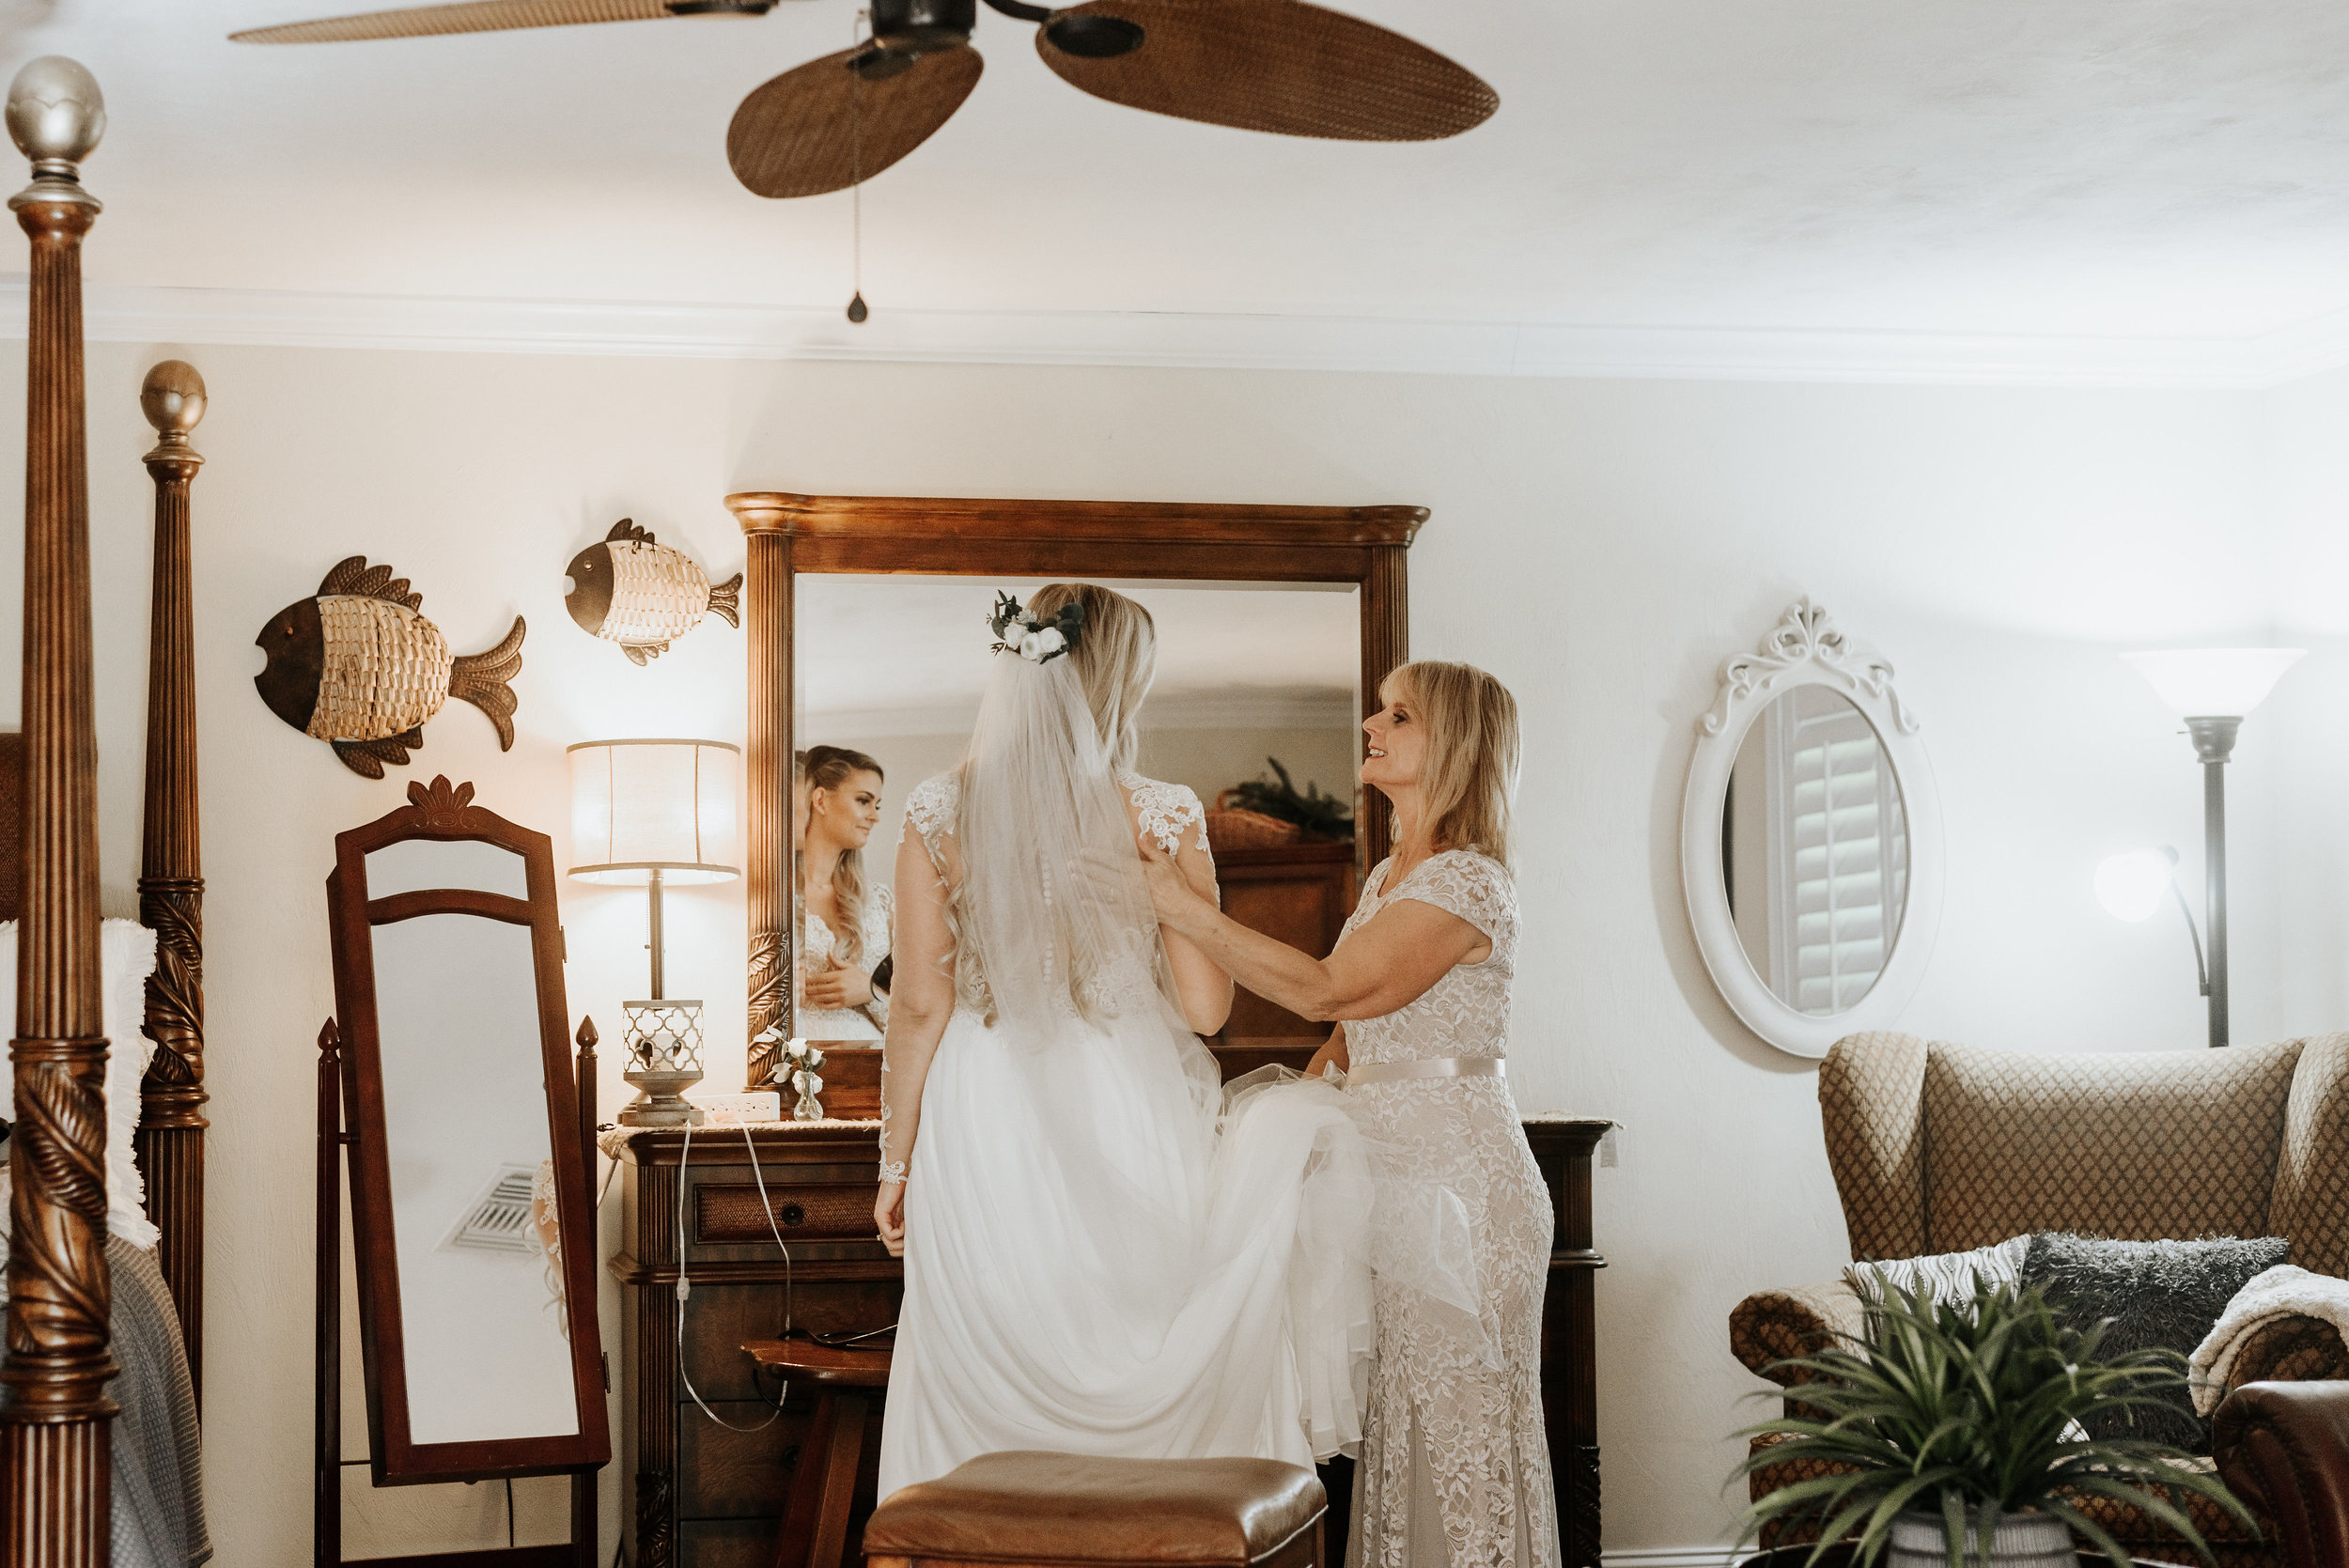 Mikenzi_Brad_Wedding_The_Delamater_House_New_Smyrna_Beach_Florida_Photography_by_V_4535.jpg